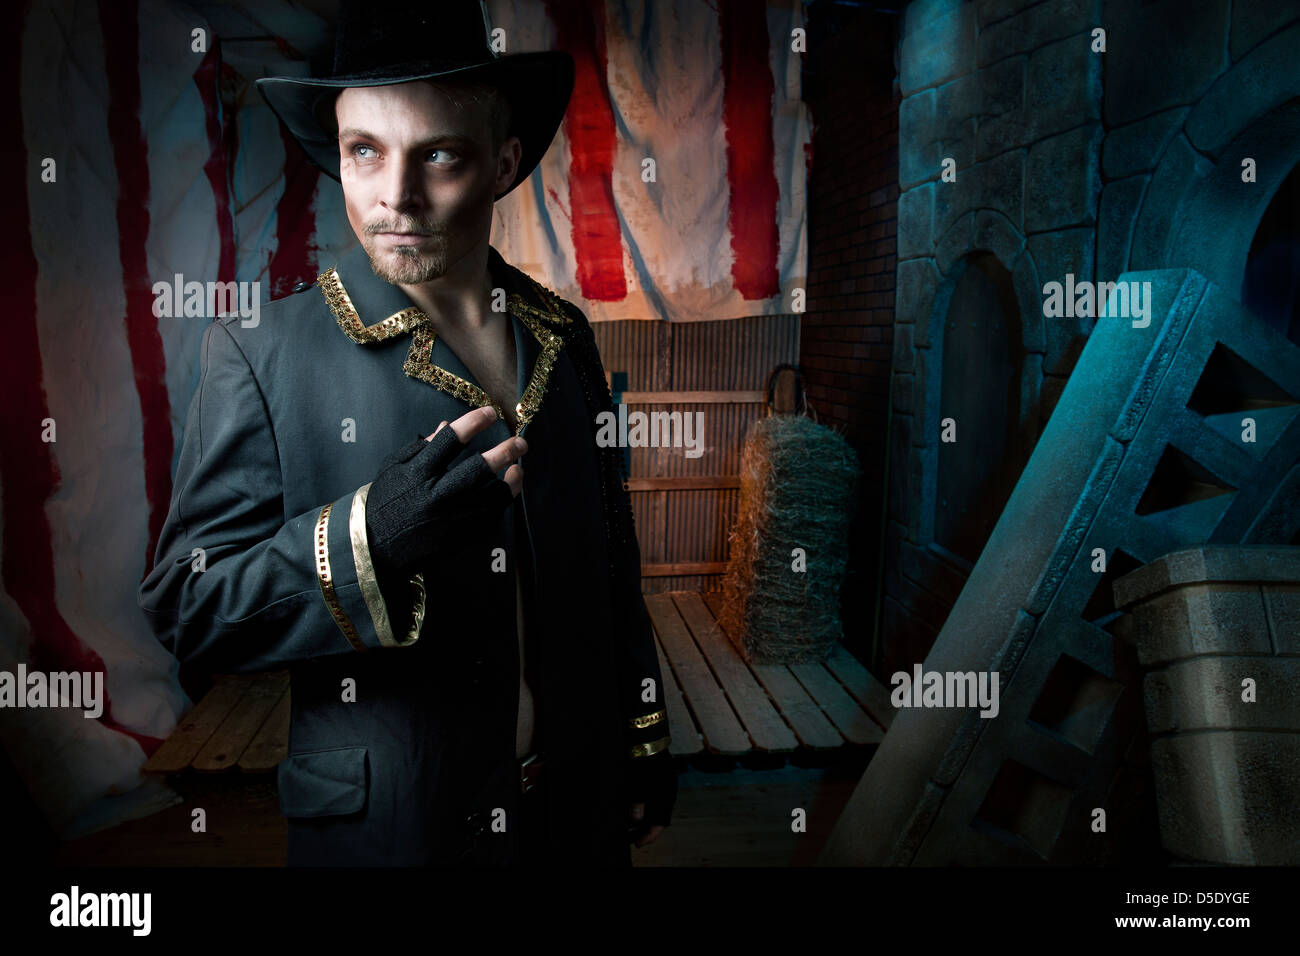 Man with top hat in dark tented alley - Stock Image